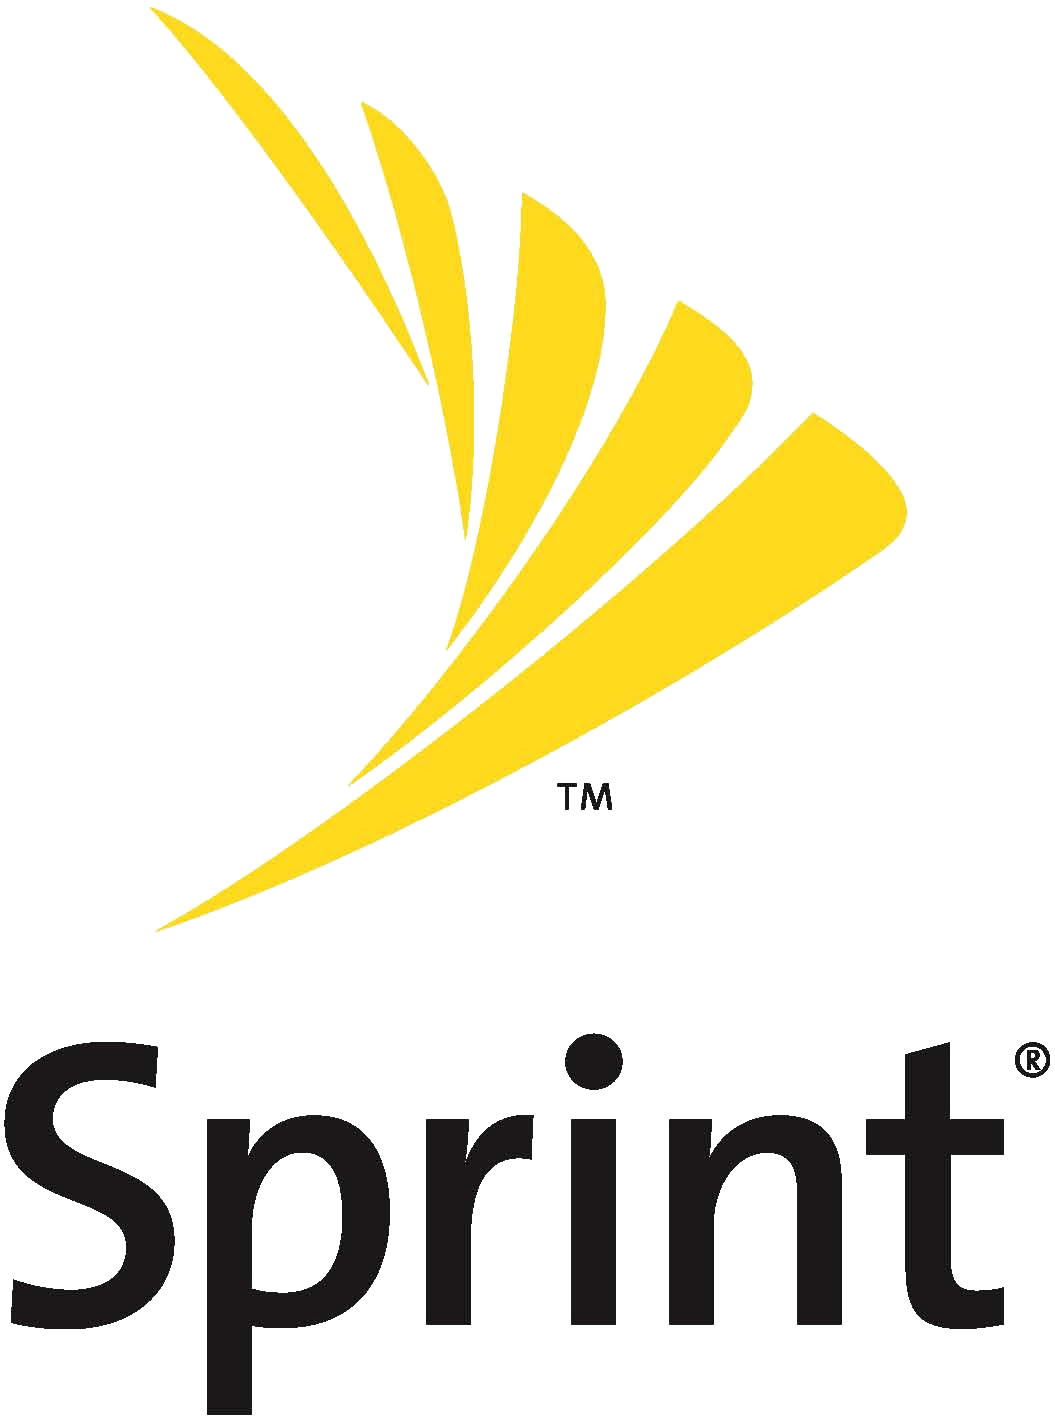 SoftBank to Acquire 70% Of Sprint